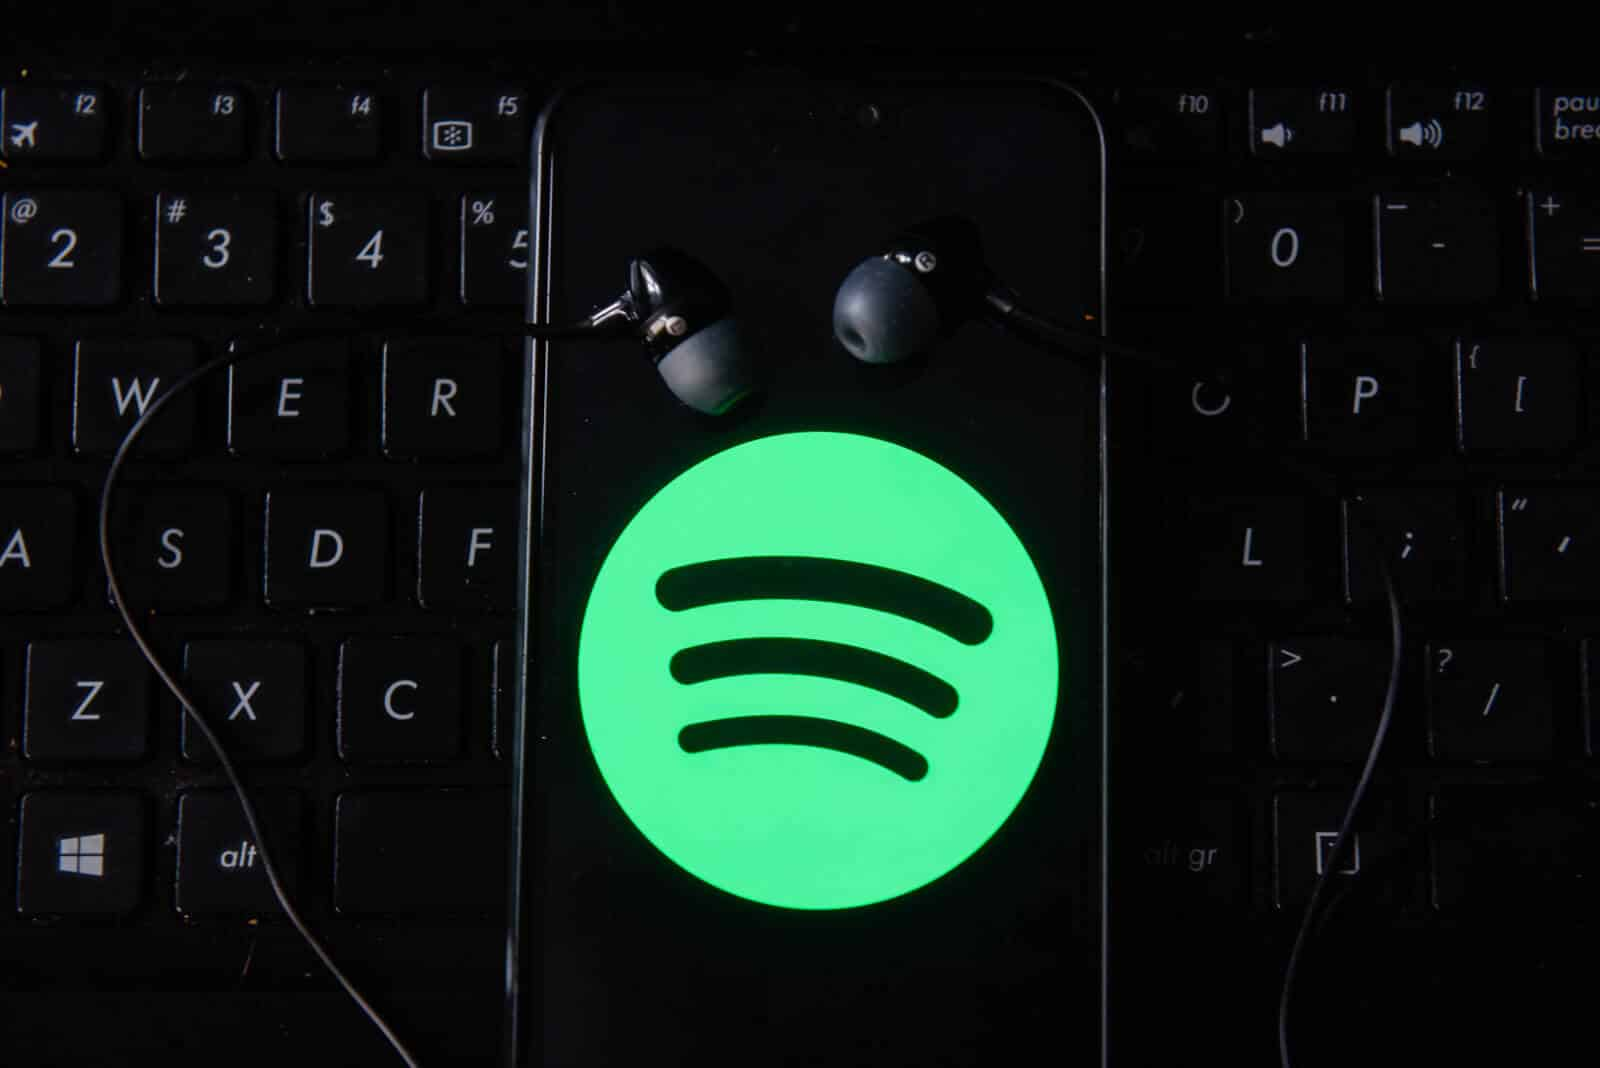 Spotify's home screen widget is back on its Android app